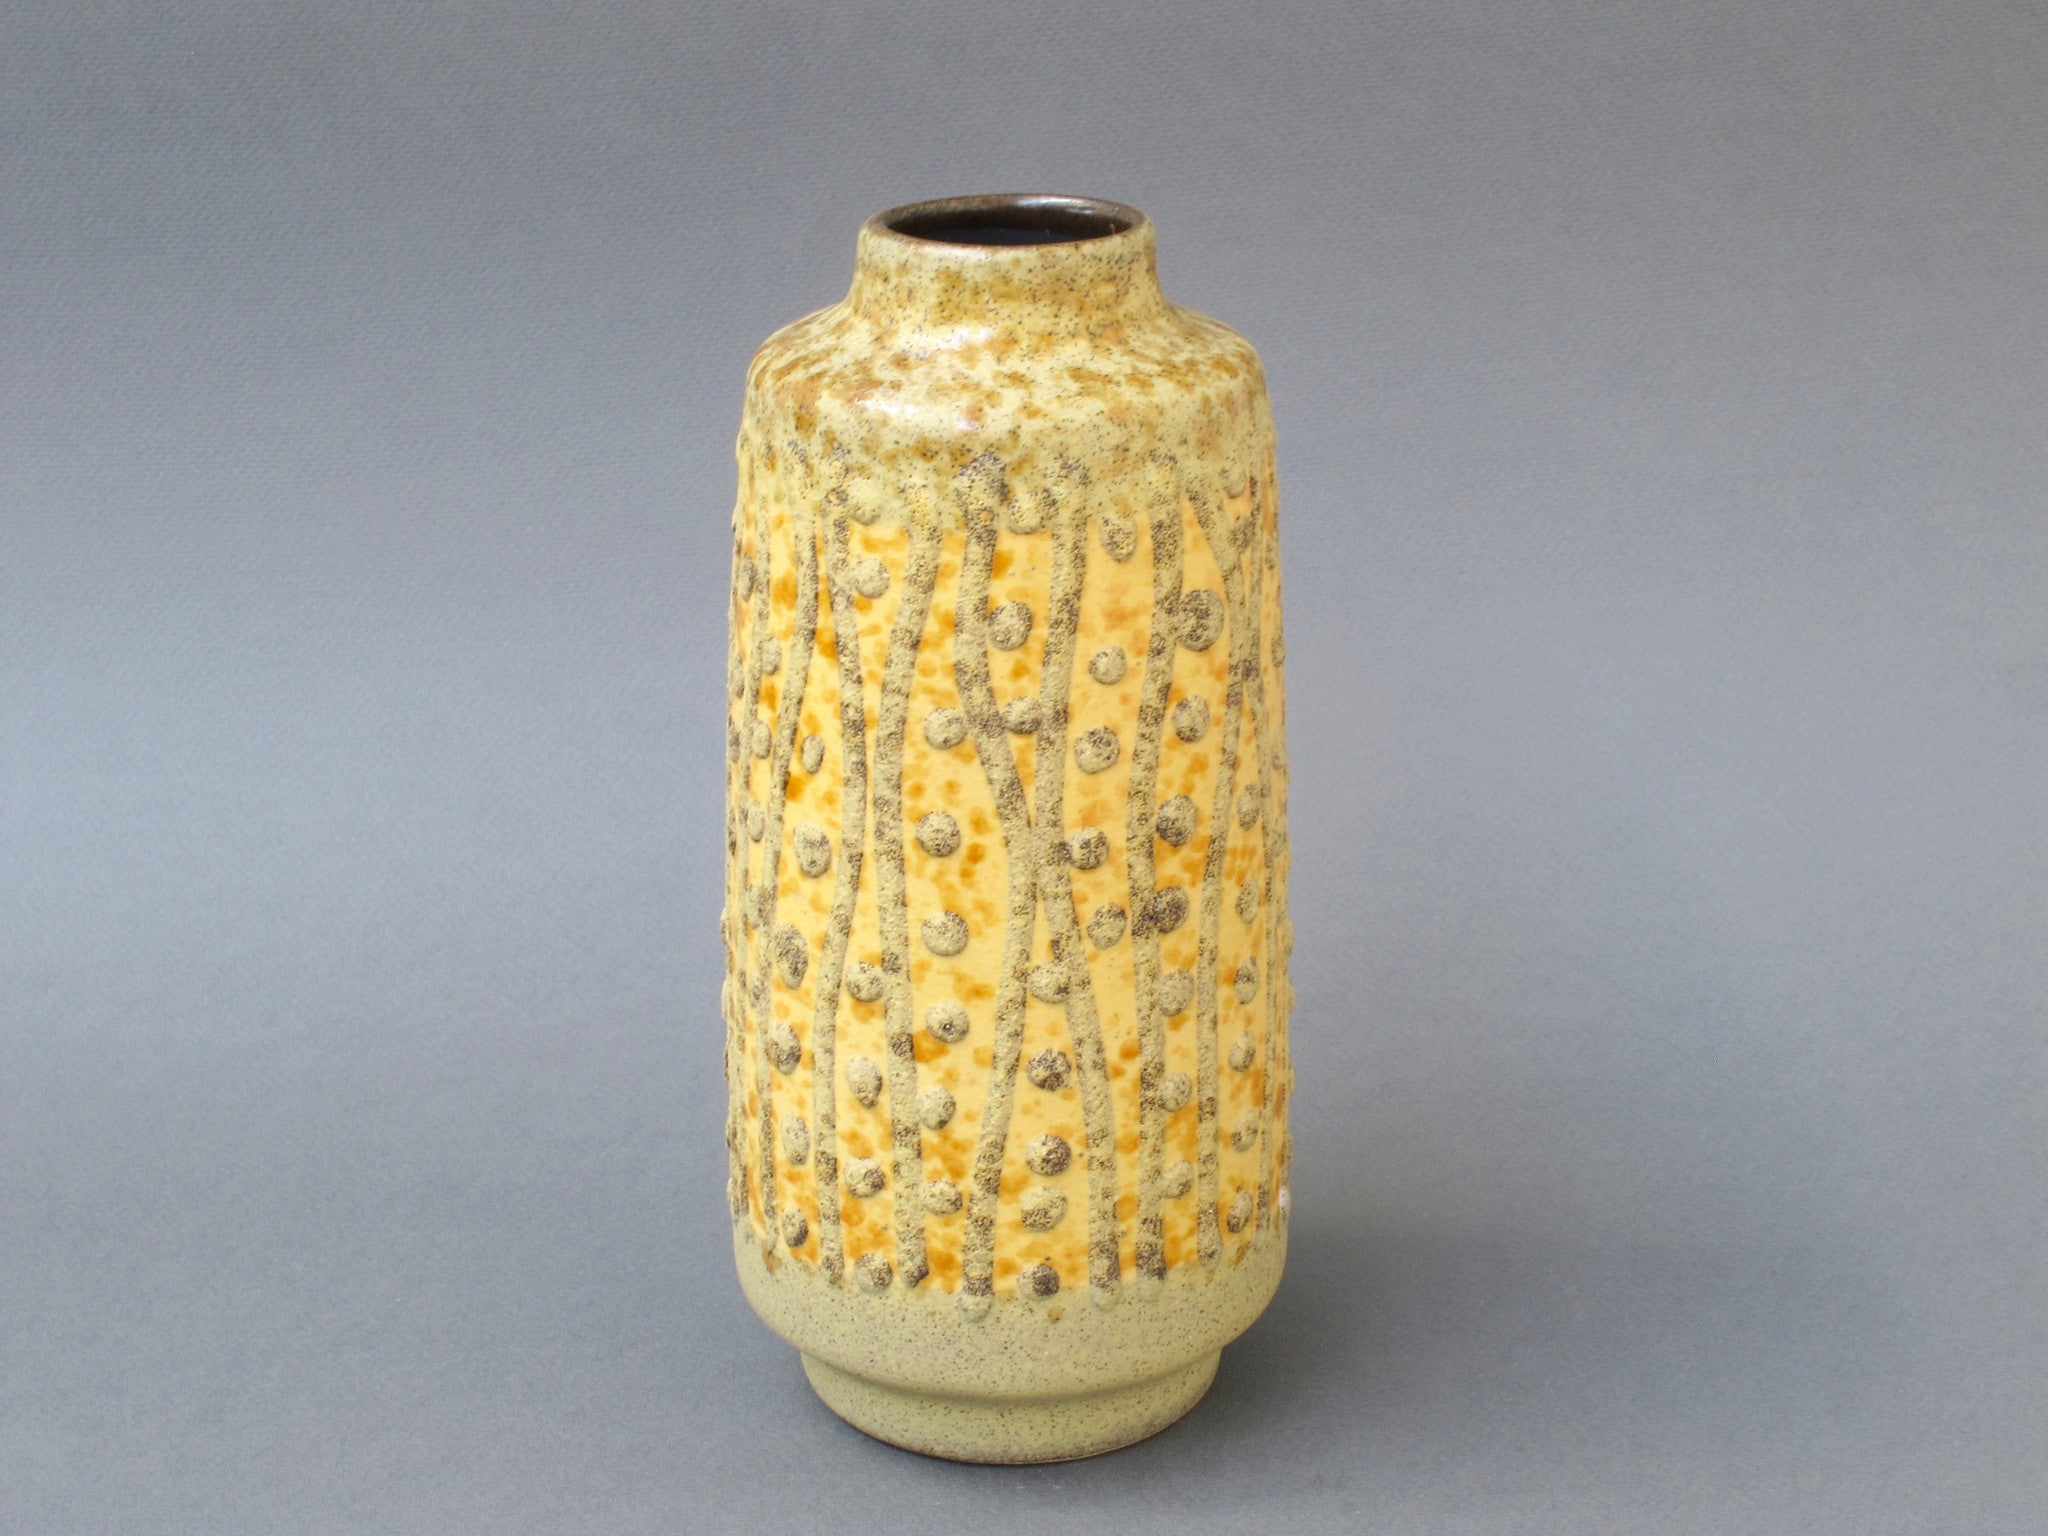 East German Vintage Vase from Haldensleben